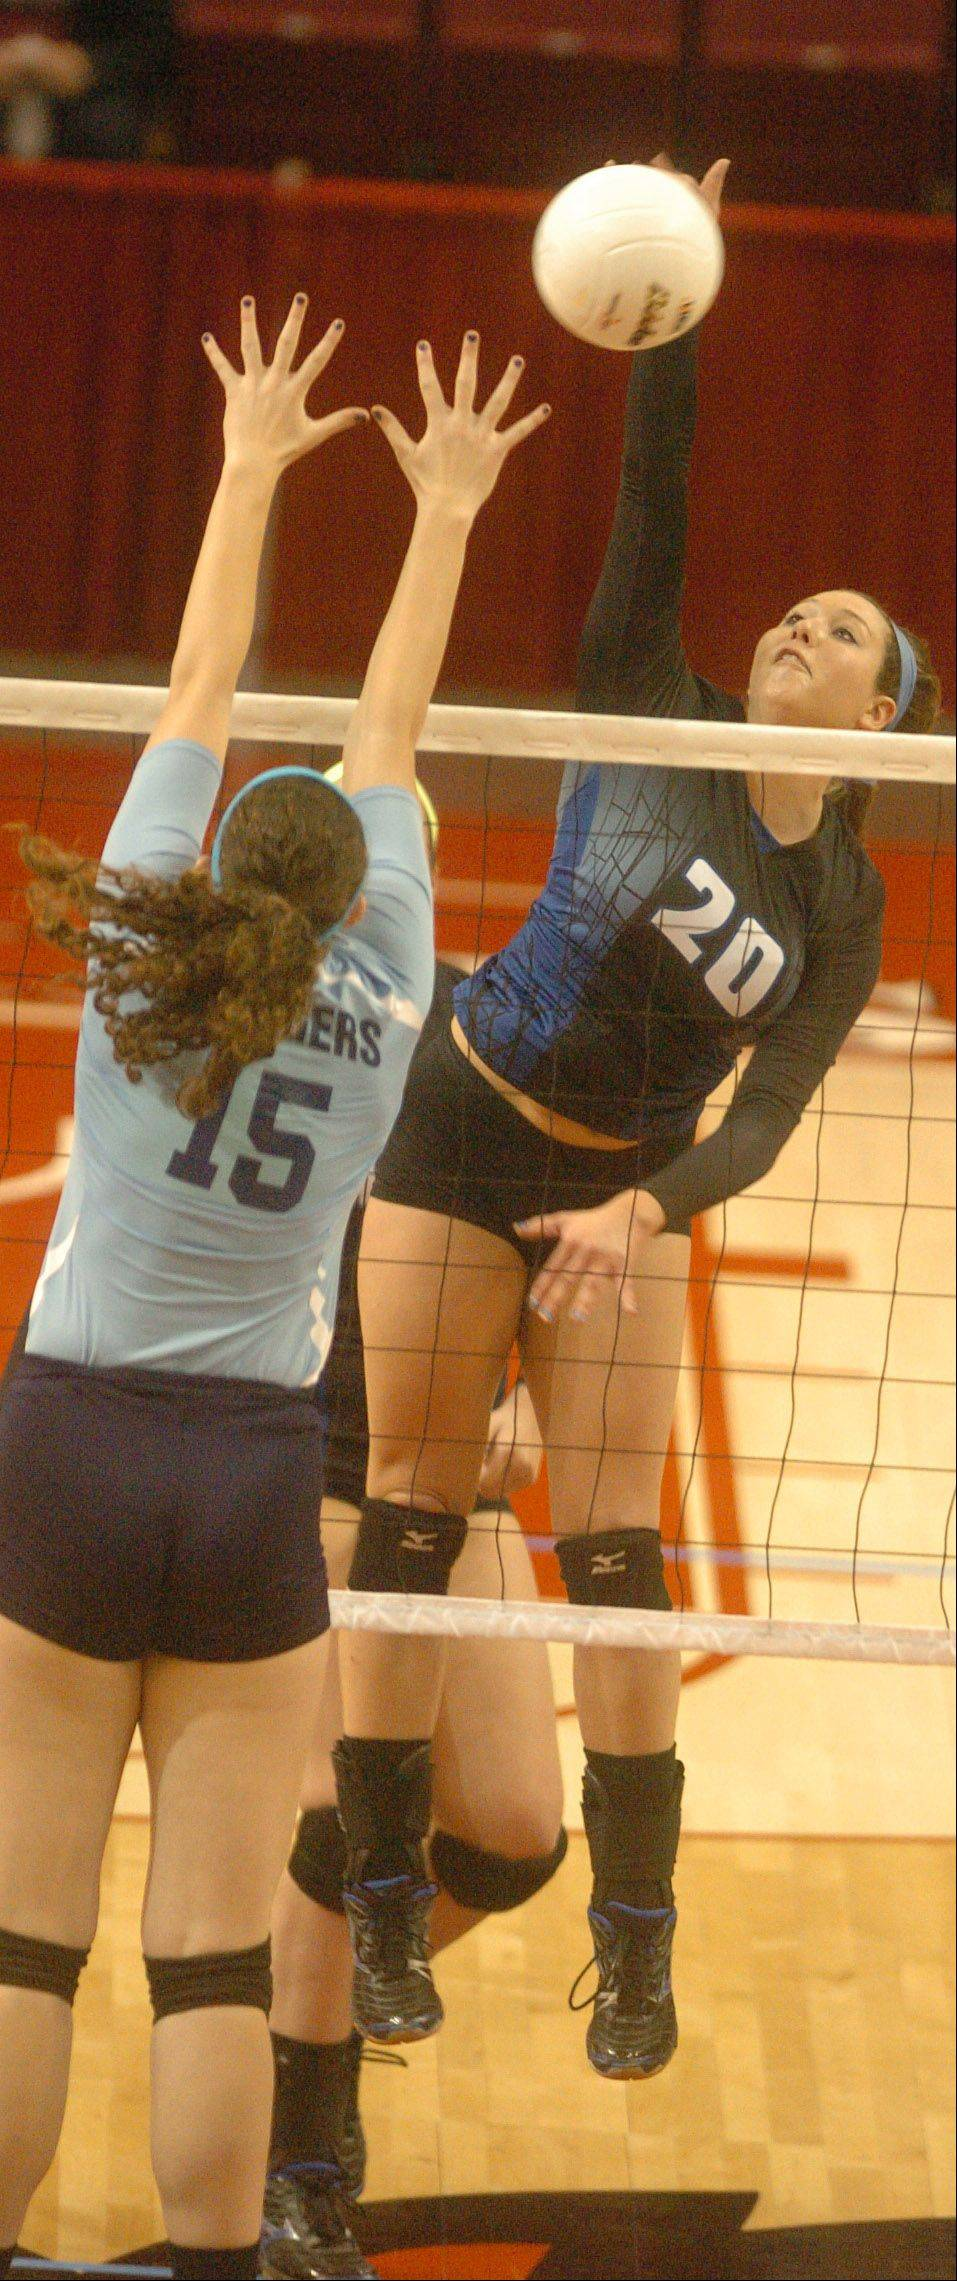 Michelle McLaughlin of St. Francis goes up for a hit during the class 3A state semifinal between St. Francis and Champaign Centennial in Bloomington-Normal Friday. Lauren Cloyd of Centennial was trying to block her shot.